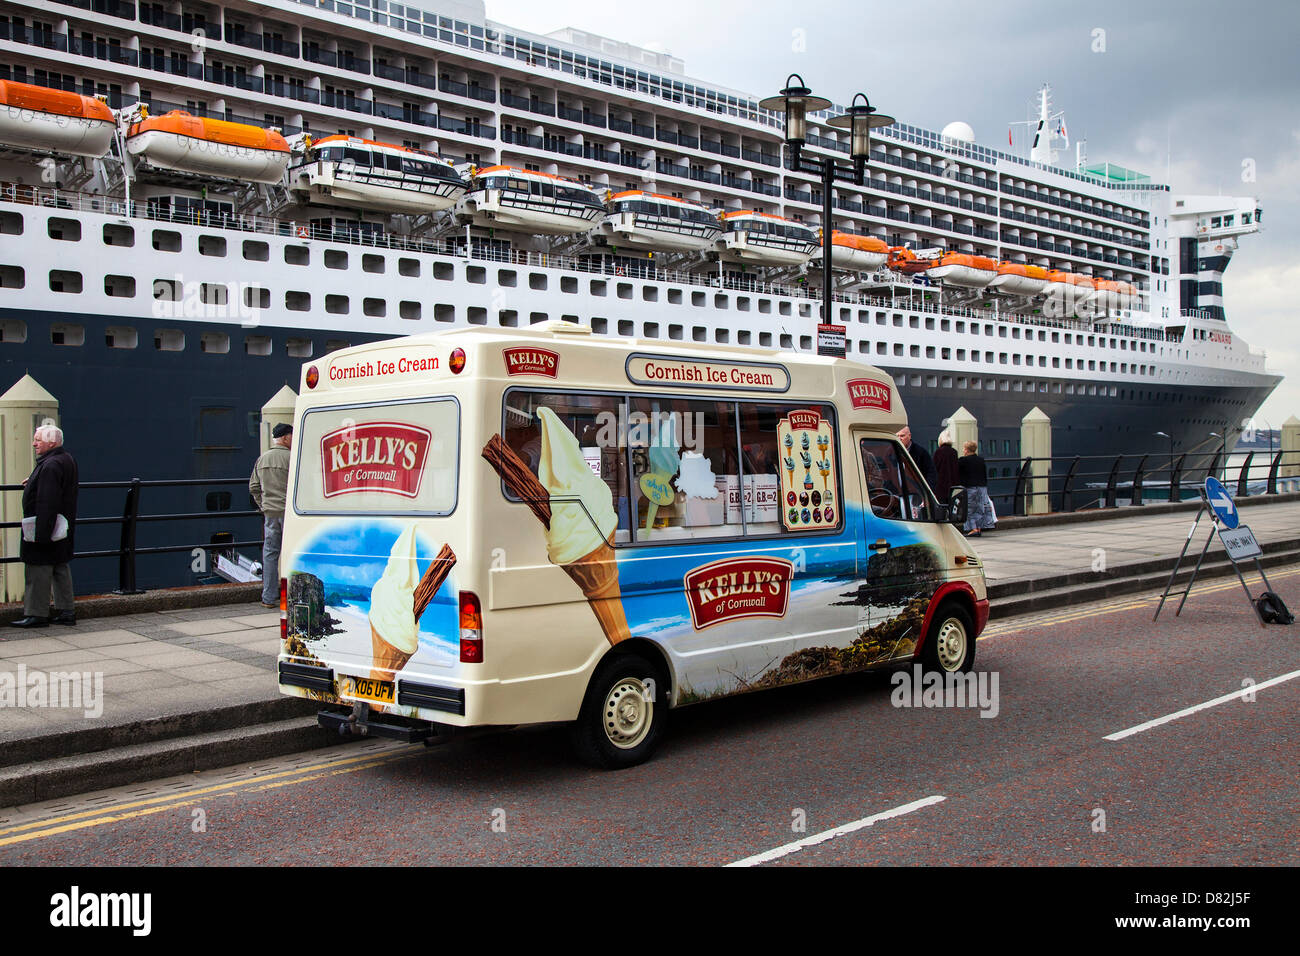 Liverpool, UK 17th May, 2013. Cornish Ice cream vendor van at the Big Cruise Liner Terminal where the Passenger - Stock Image